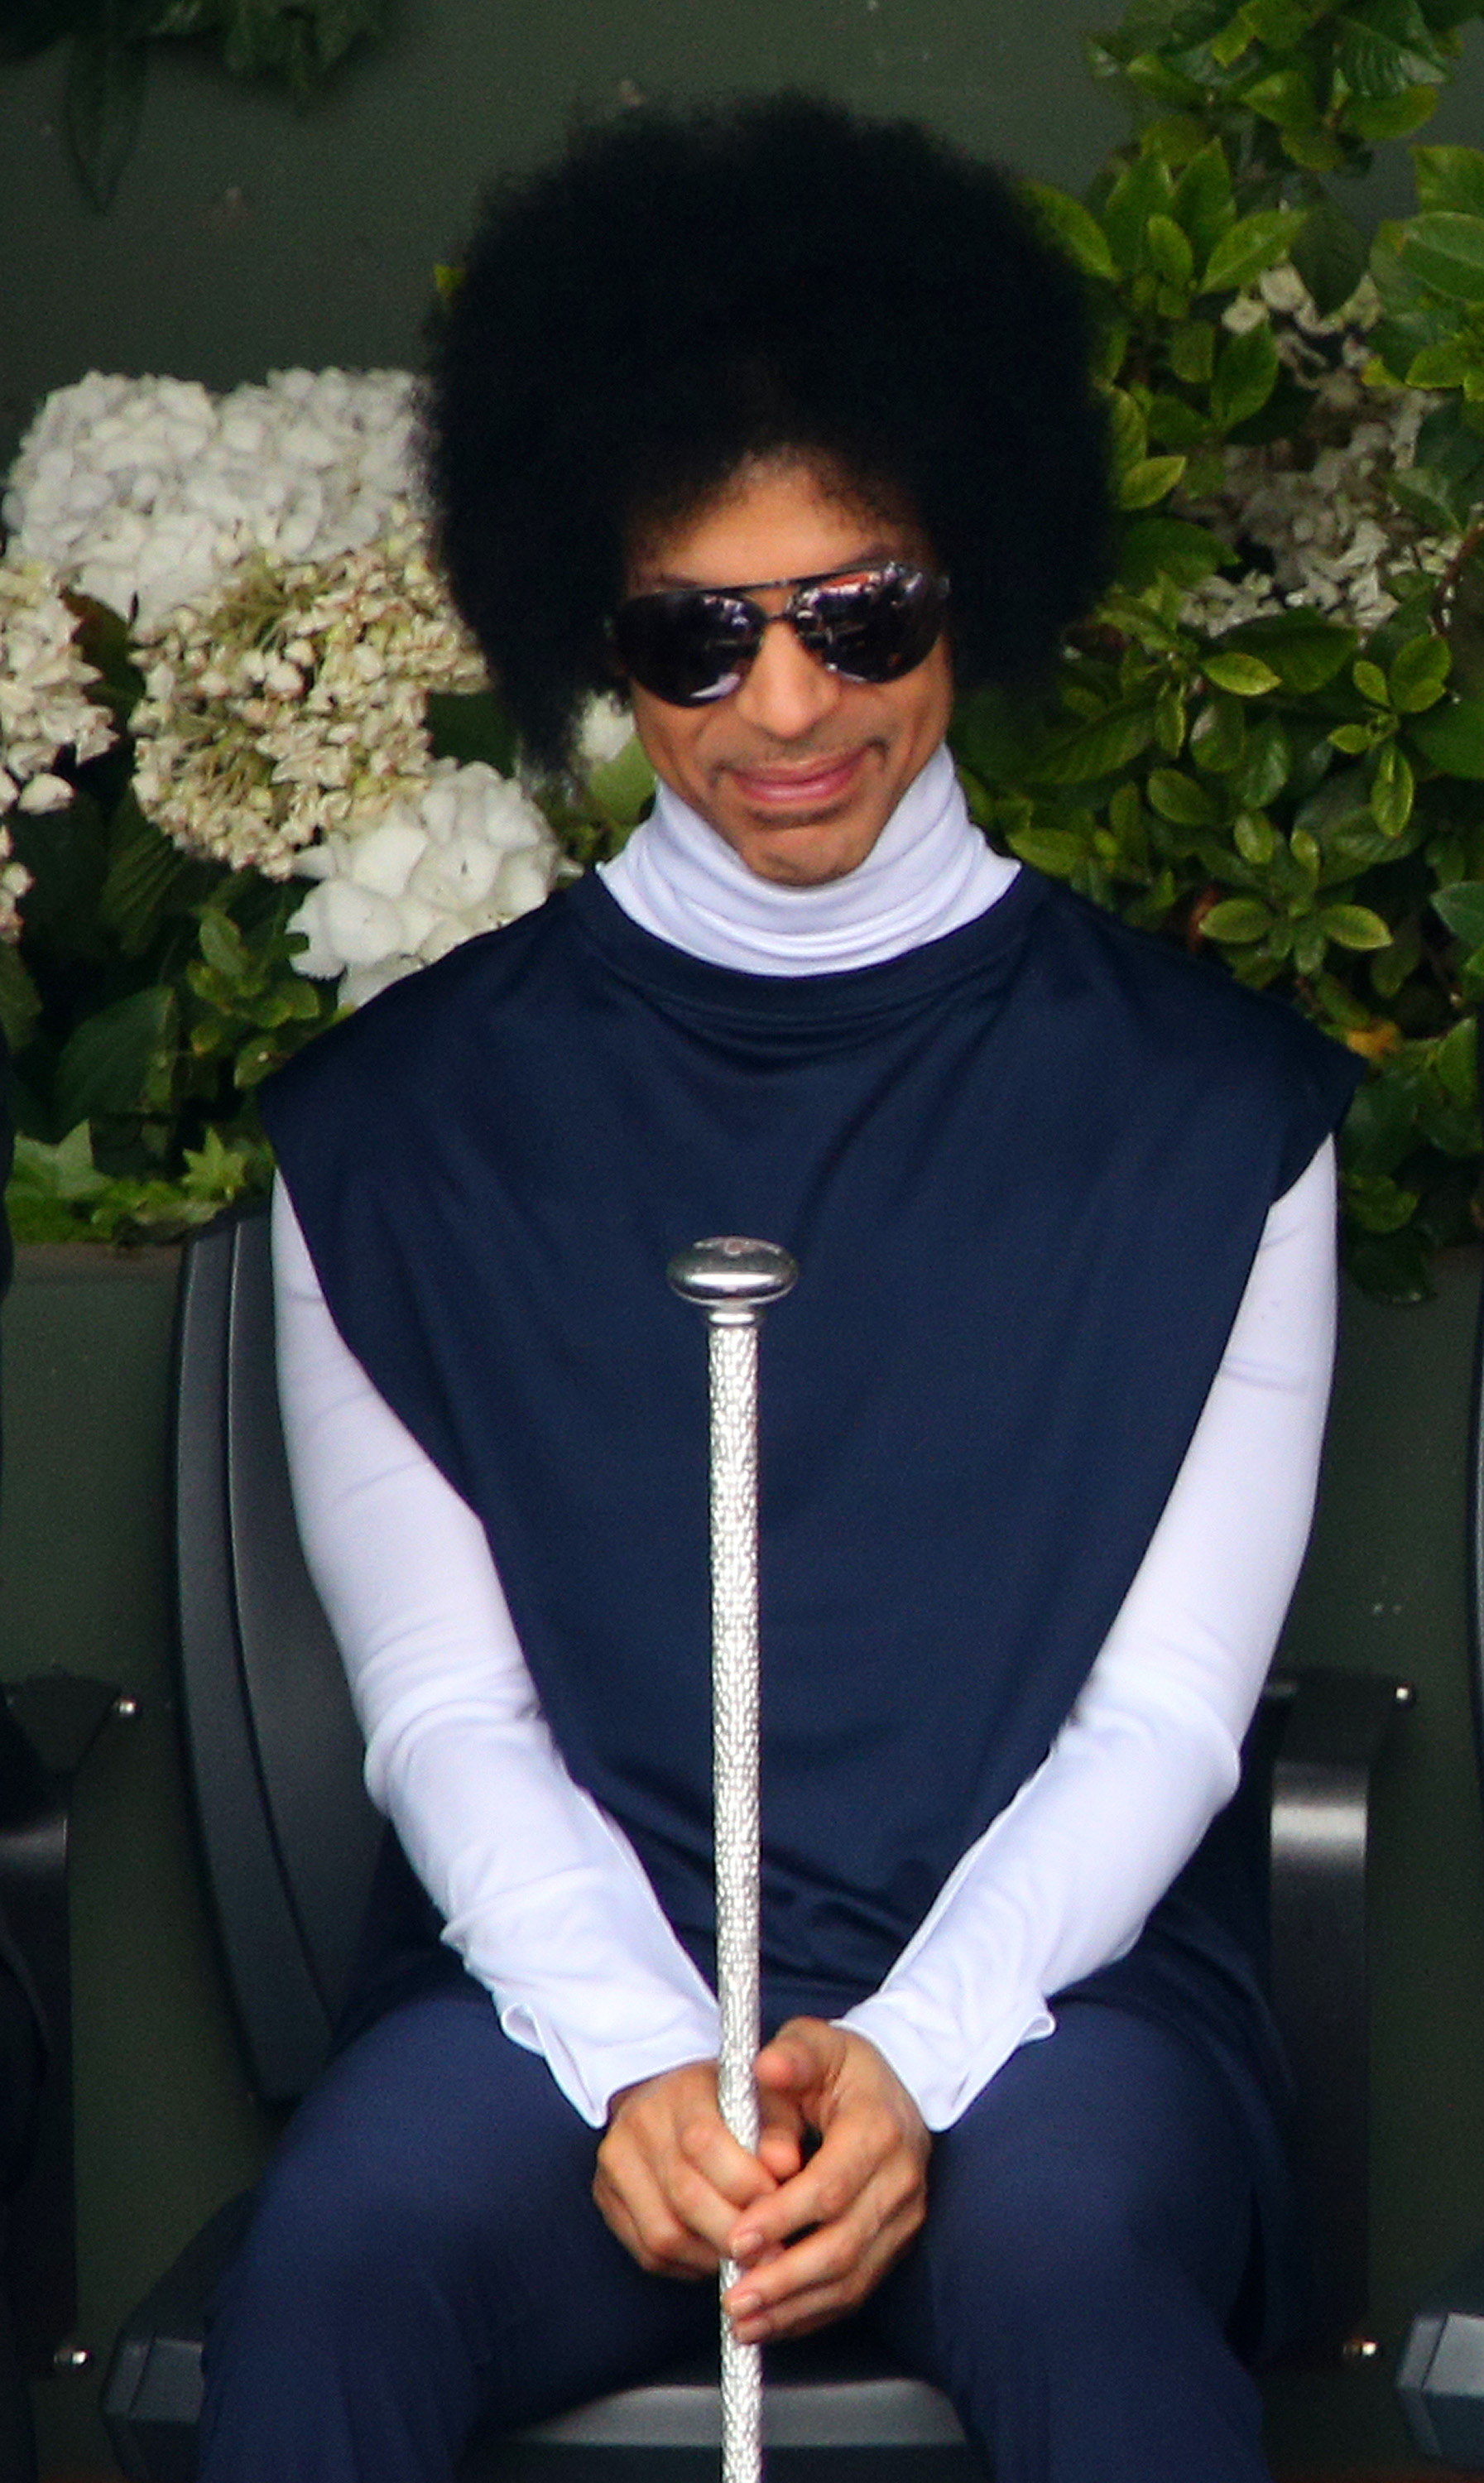 PARIS, FRANCE - JUNE 02: Prince watches the men's singles match between Rafael Nadal of Spain and Dusan Lajovic of Serbia on day nine of the French Open at Roland Garros on June 2, 2014 in Paris, France. (Photo by Clive Brunskill/Getty Images)